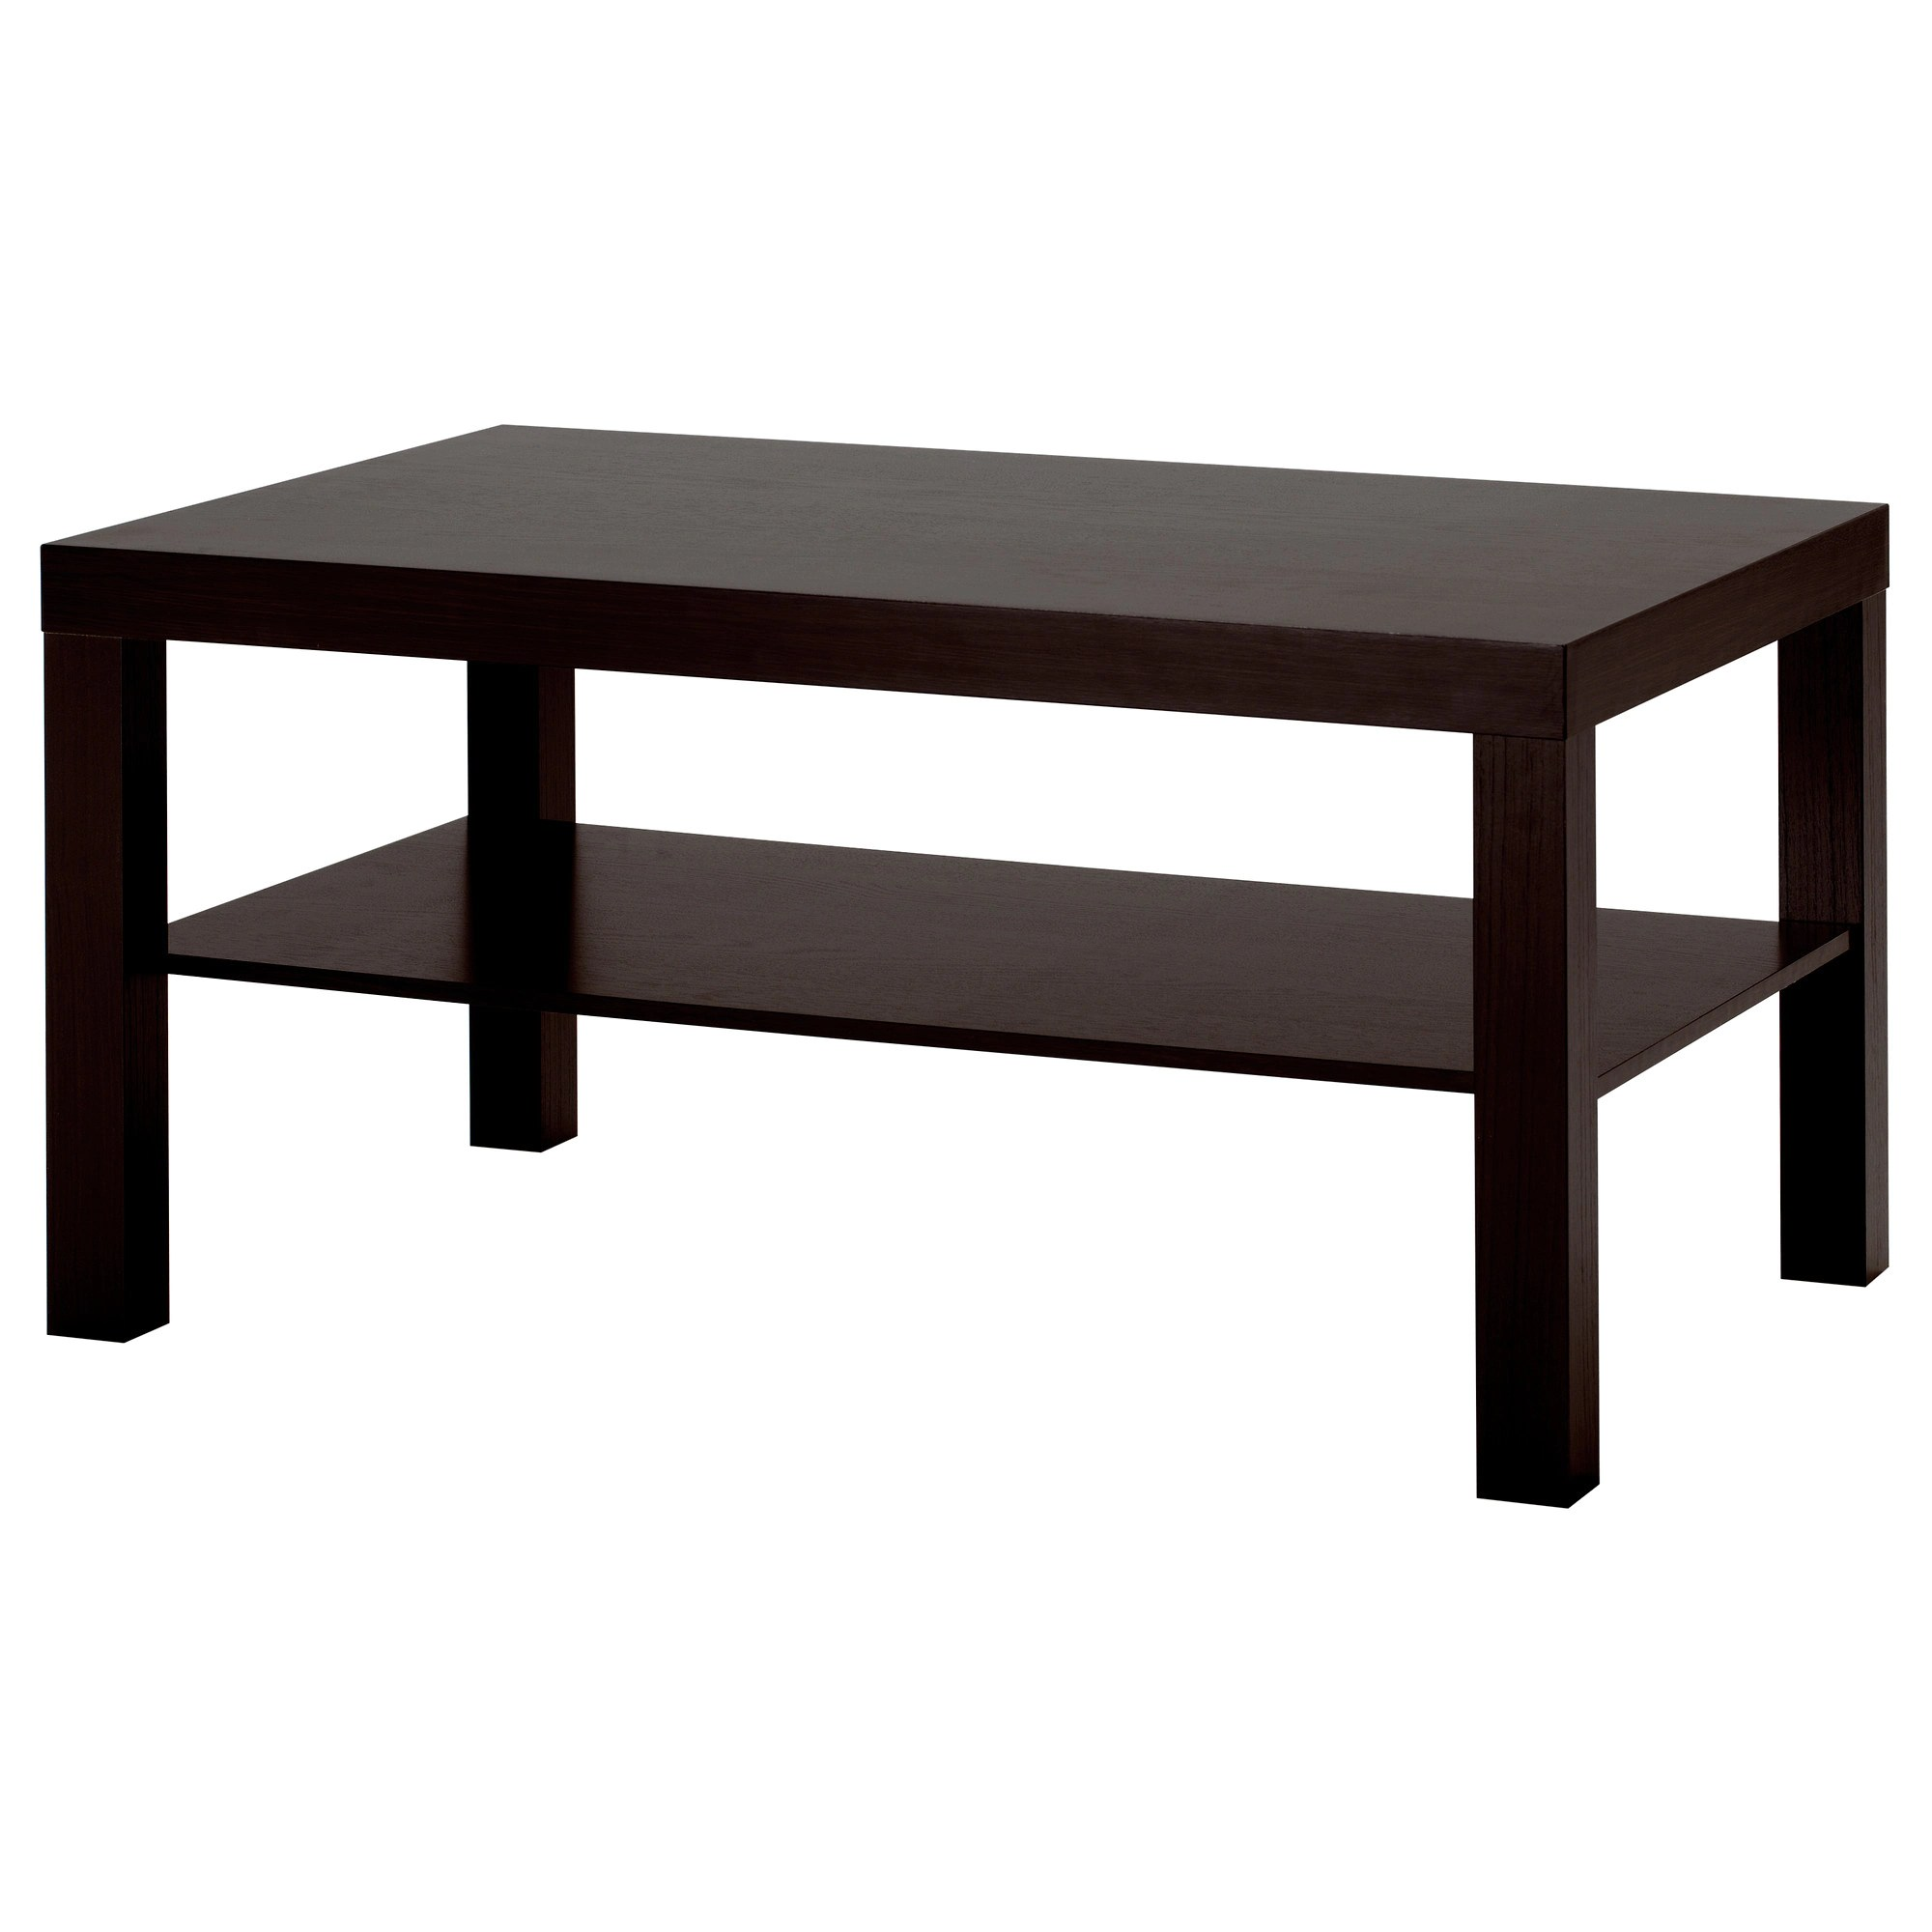 Ikea Table Lack Coffee Table Black Brown